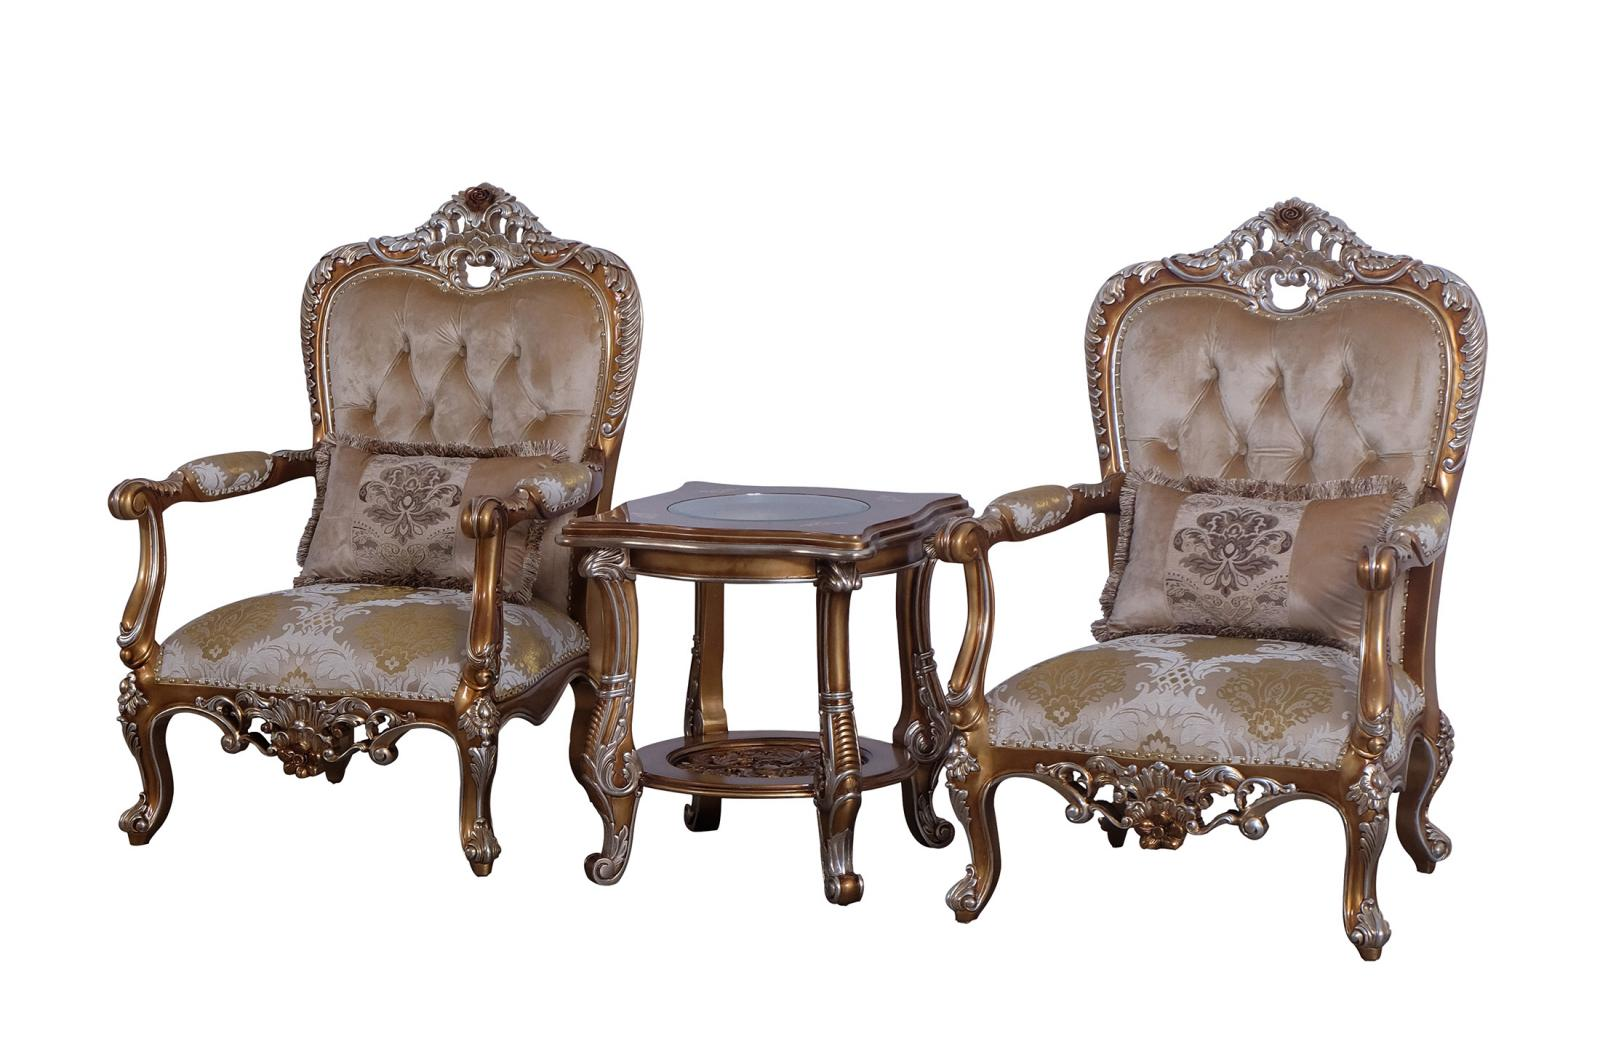 Classic  Traditional Gold  Sand Wood  Solid Hardwood and Fabric Arm Chair Set EUROPEAN FURNITURE 35550-C-Set-2